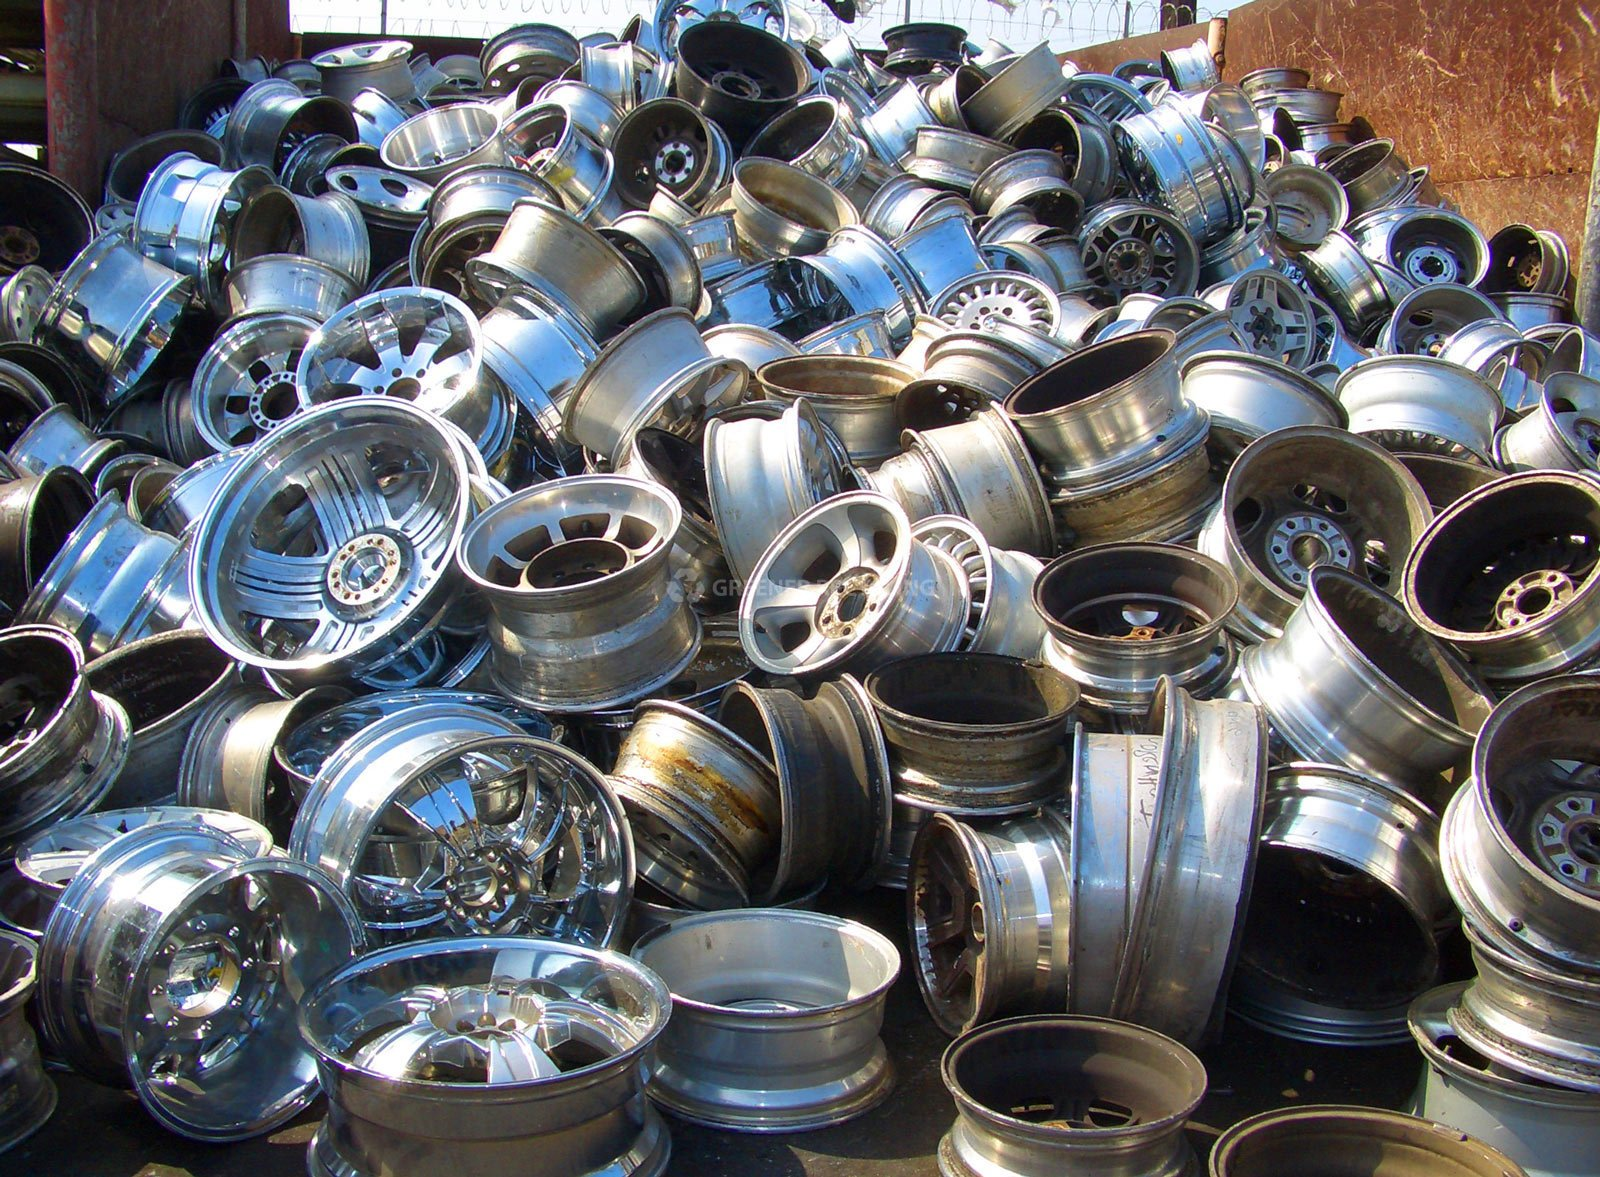 Car Scrap Metal Prices Per Pound